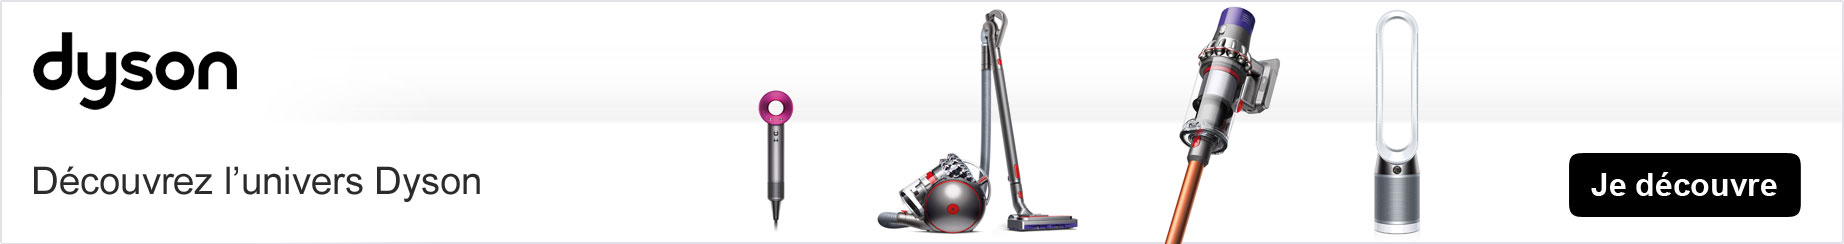 dyson gamme aspirateur dyson et ventilateurs prix discount. Black Bedroom Furniture Sets. Home Design Ideas